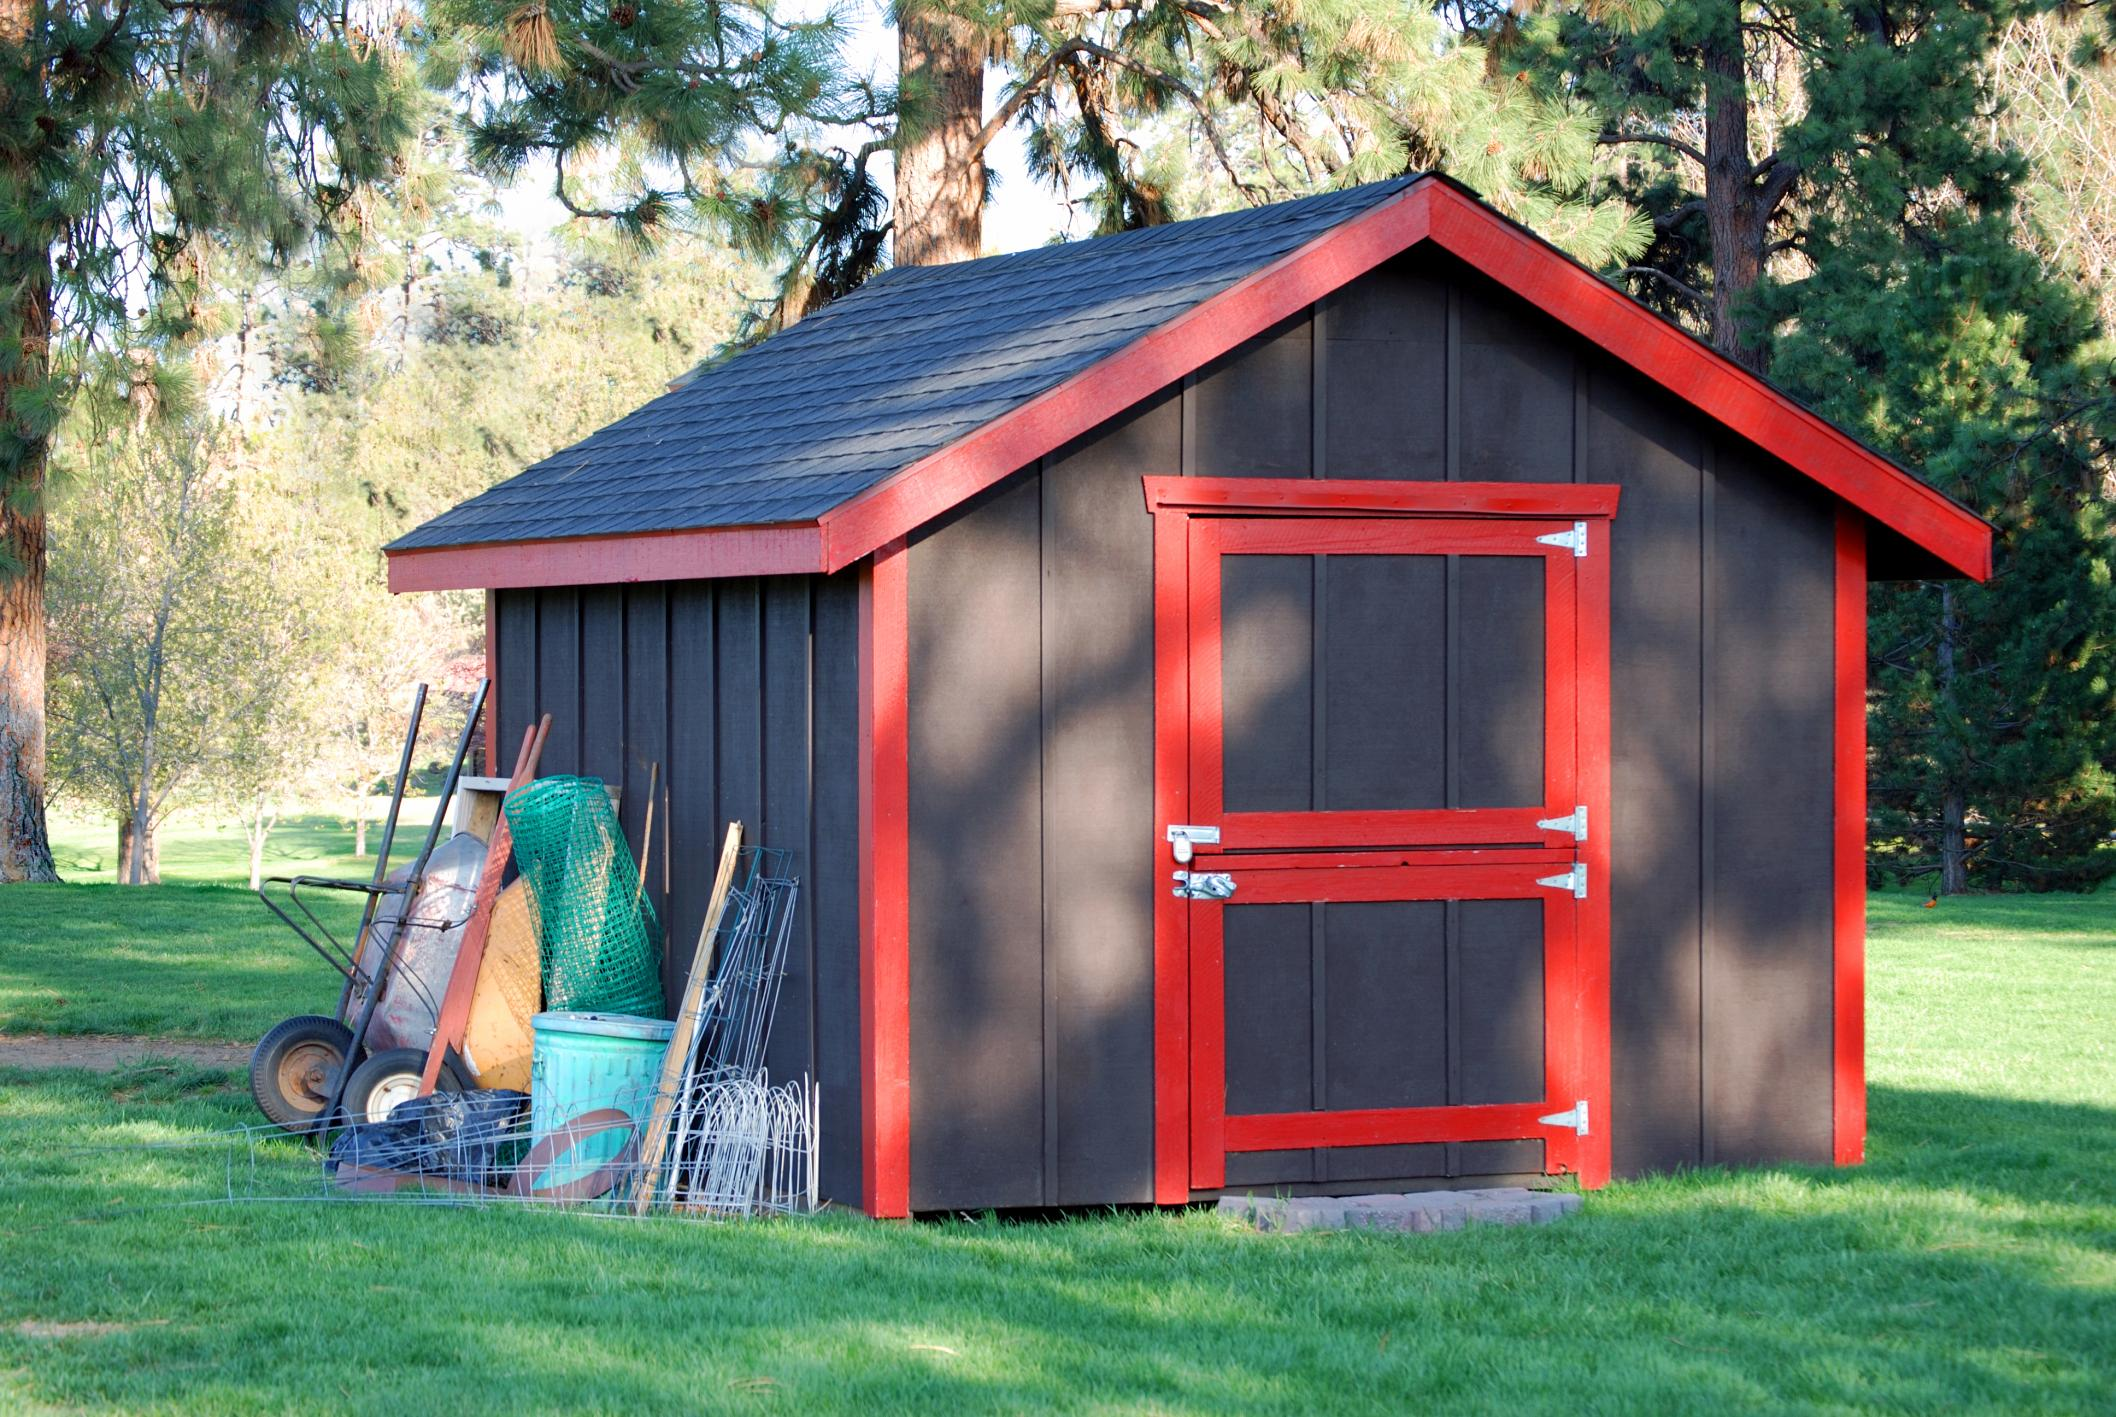 red and black wooden storage shed with metal accents